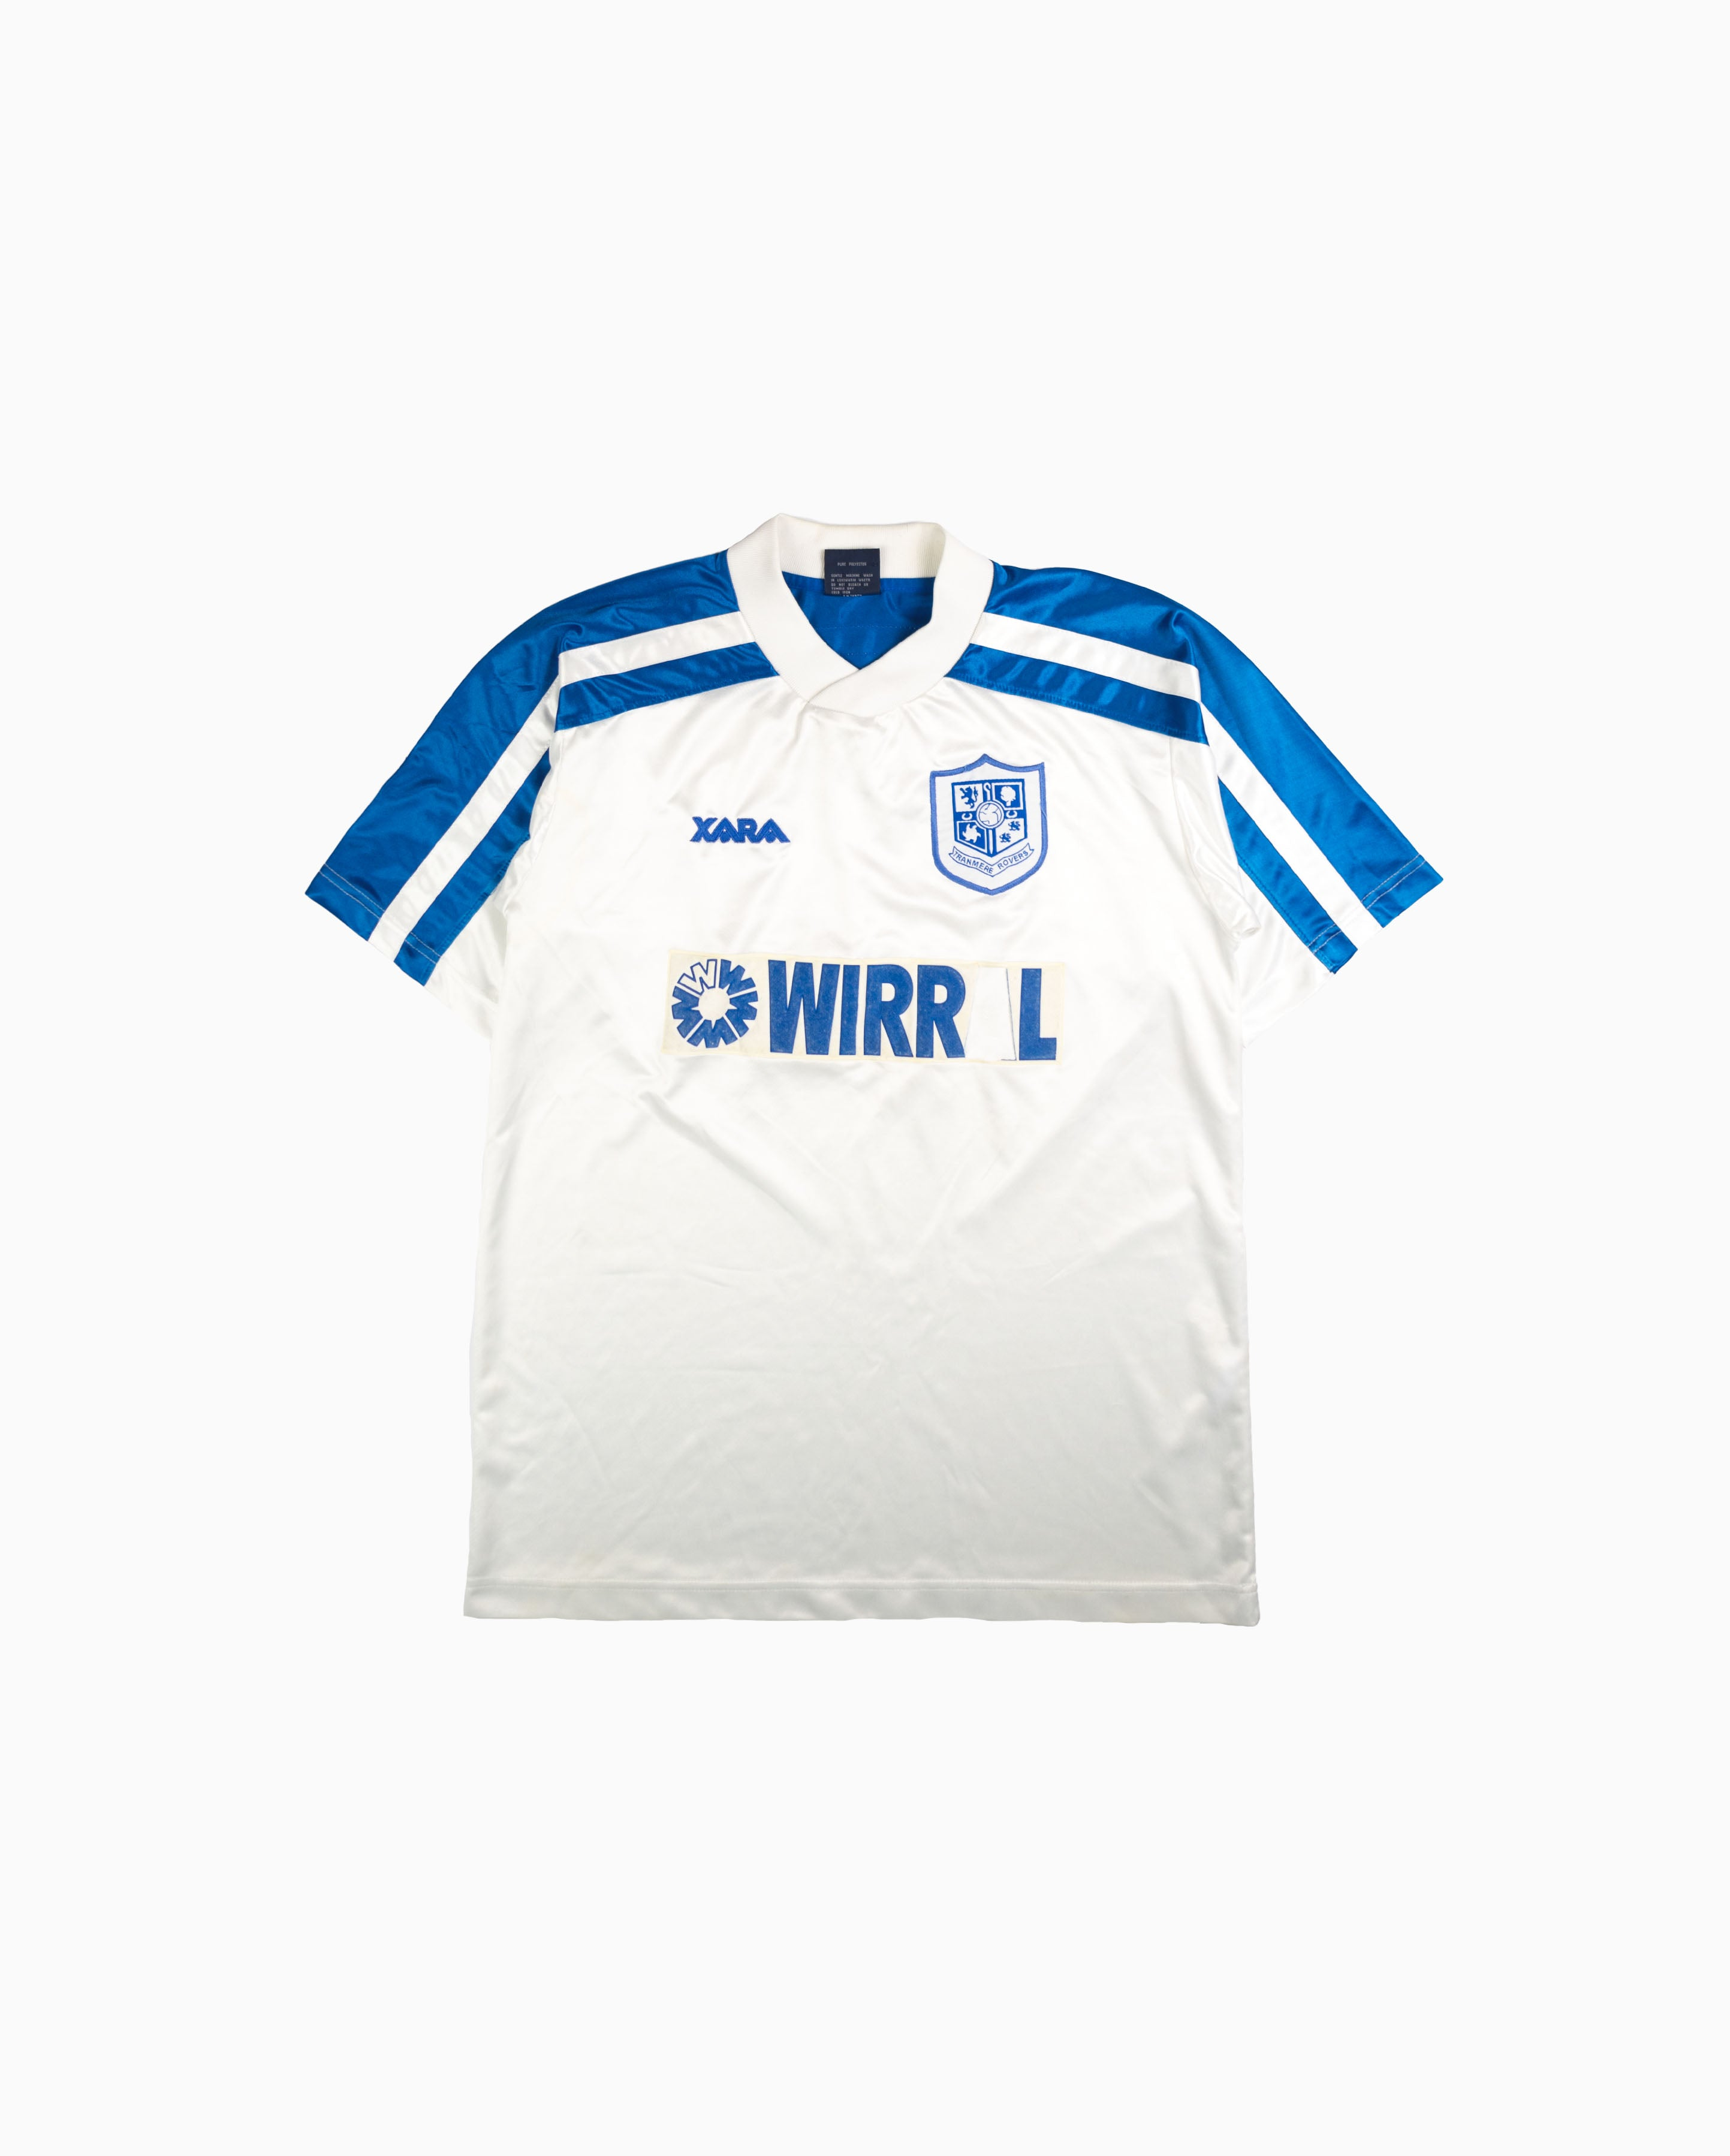 Tranmere Rovers 2000-02 Home Shirt M #280